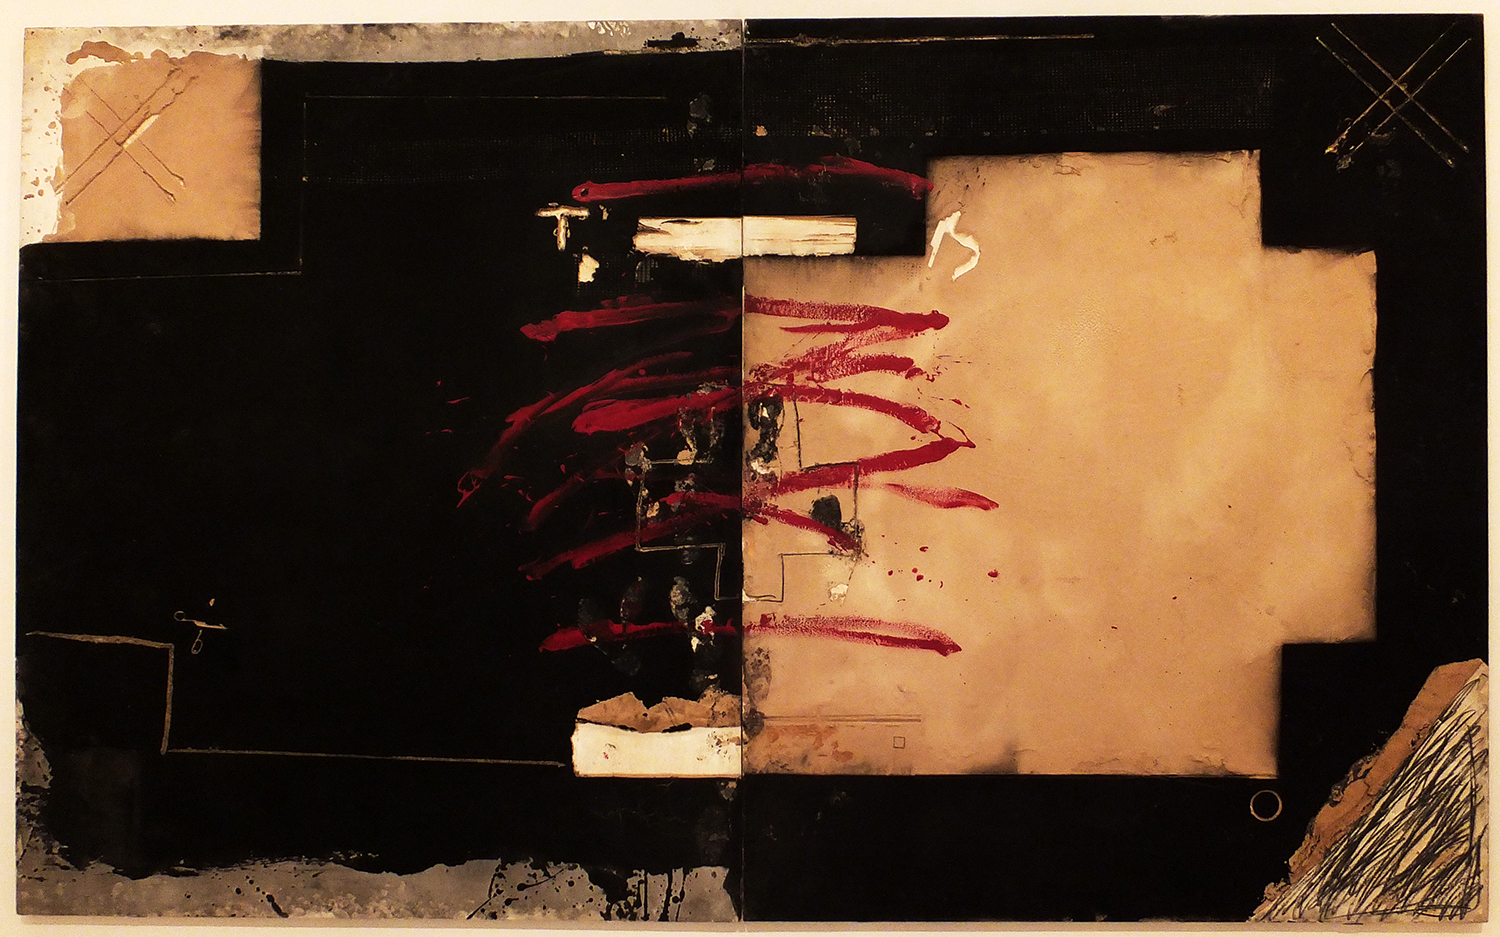 Antoni Tàpies,  Gran Díptic Roig I Negre  ( Large Red and Black Diptych ), mixed media on wood, 1980 (IVAM collection)